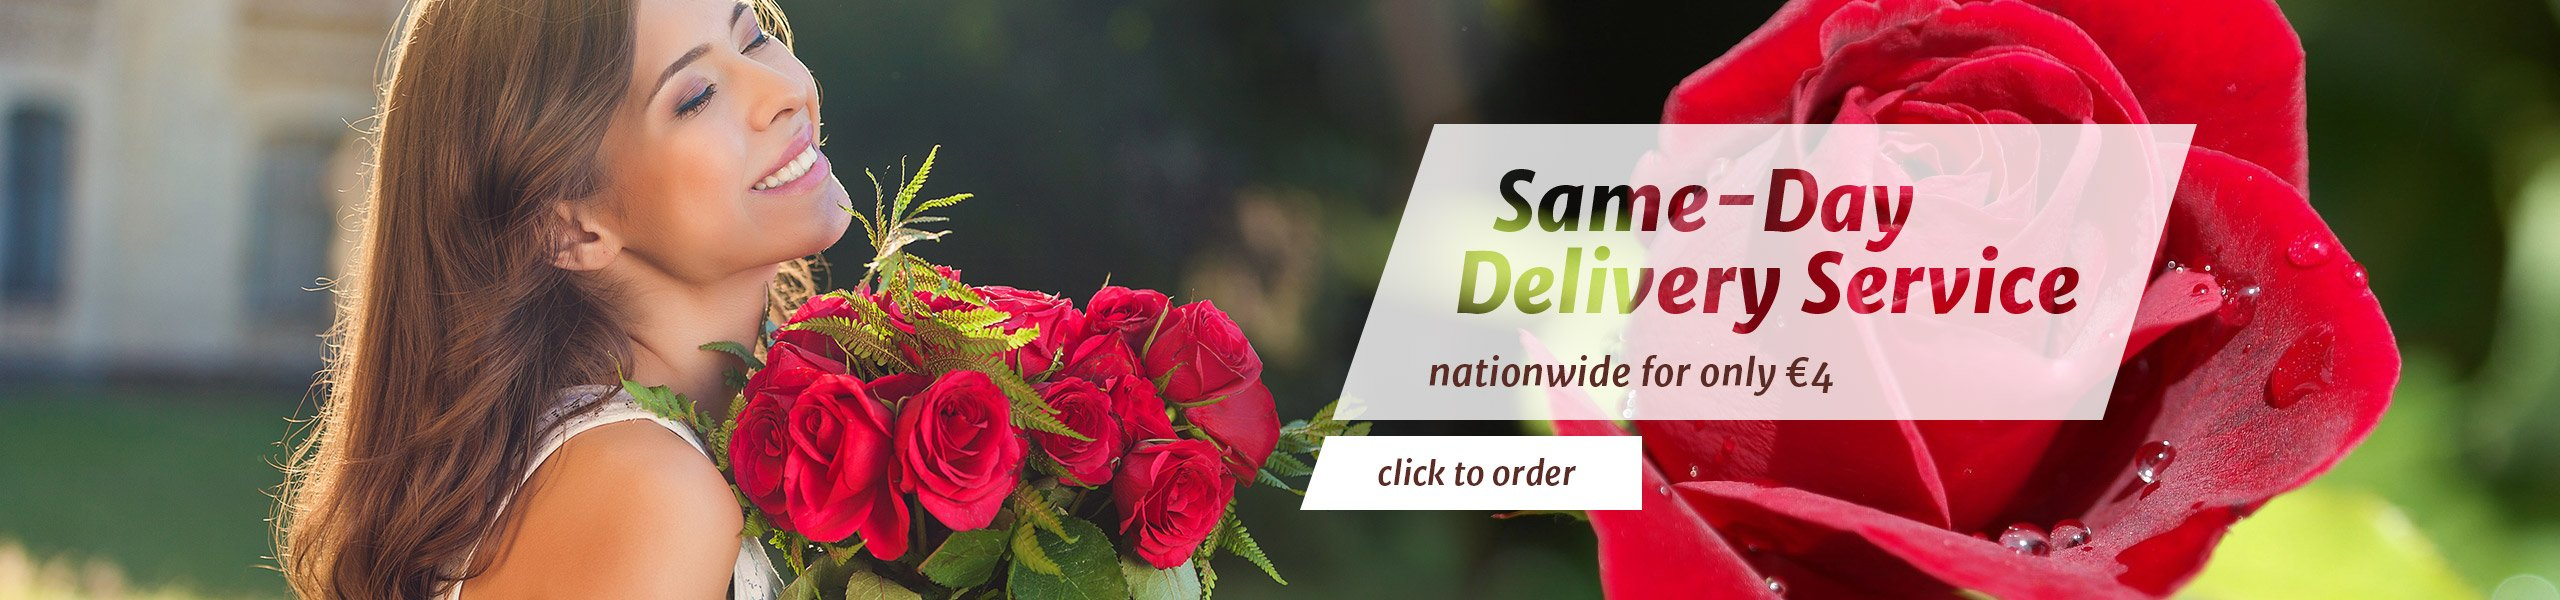 Same-Day Flower Delivery Service